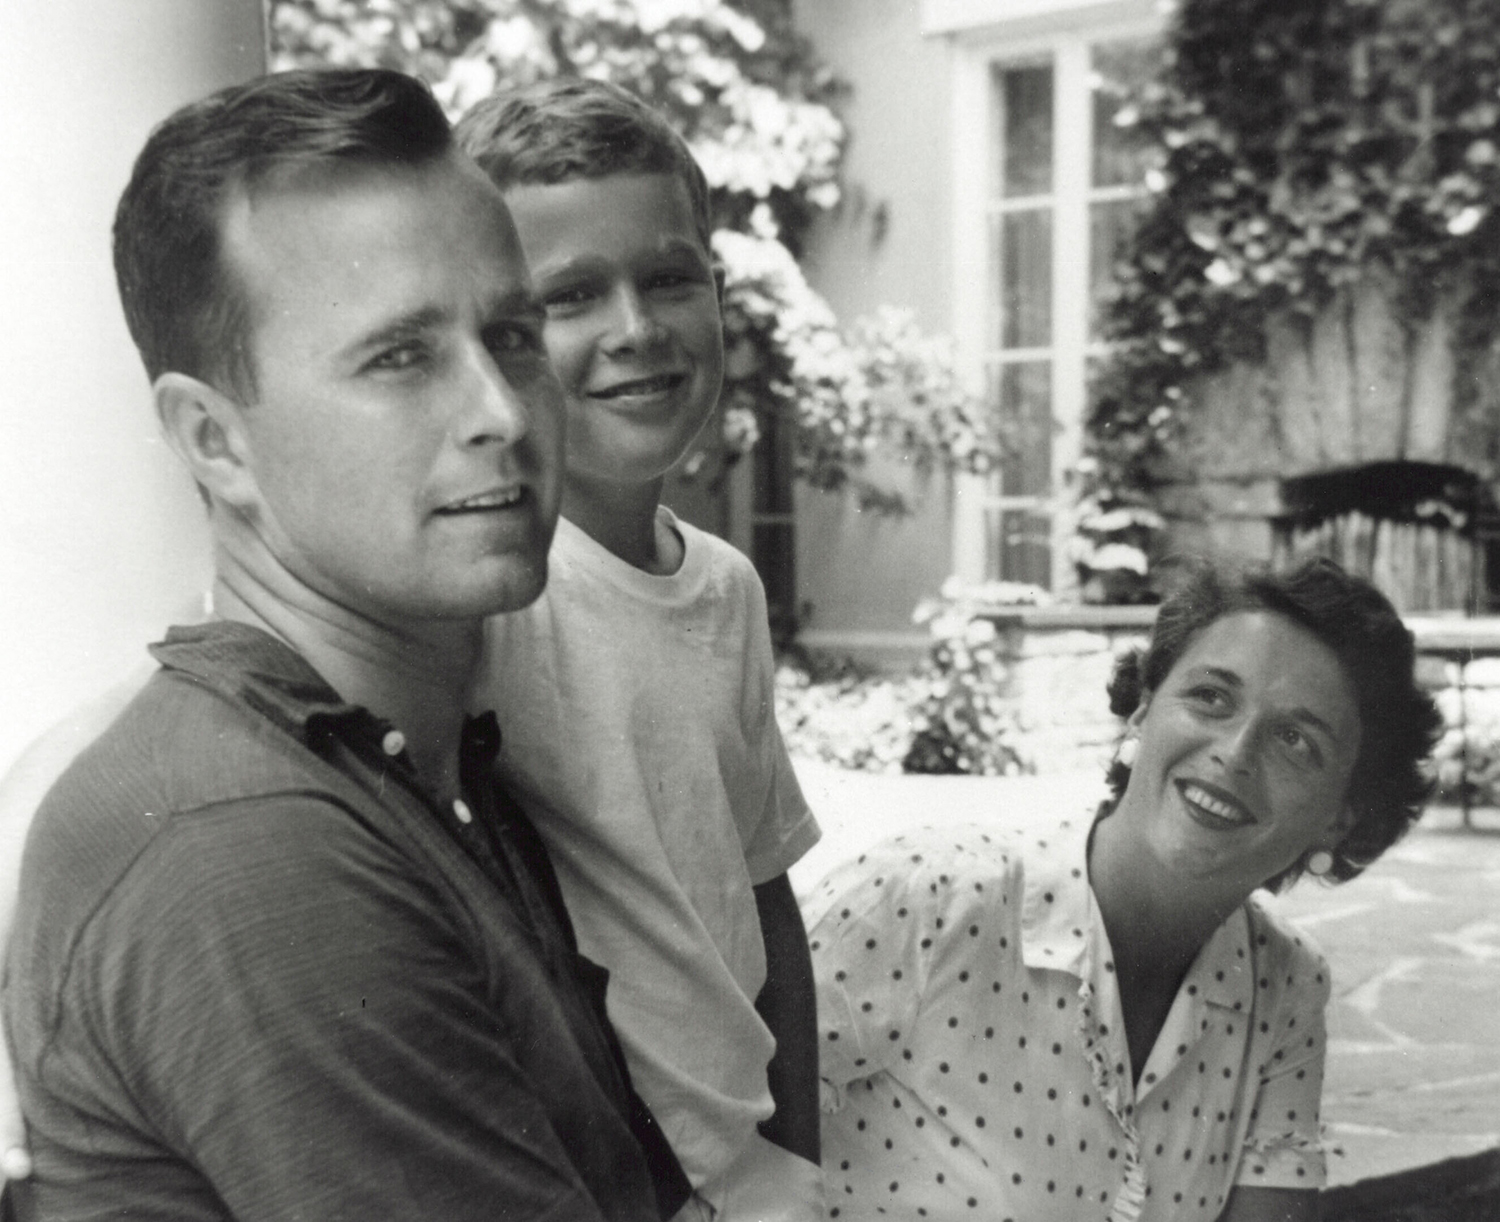 Barbara Bush with her son George W. Bush and husband George Bush in Rye, New York, 1955. (Credit: Newsmakers/Getty Images)